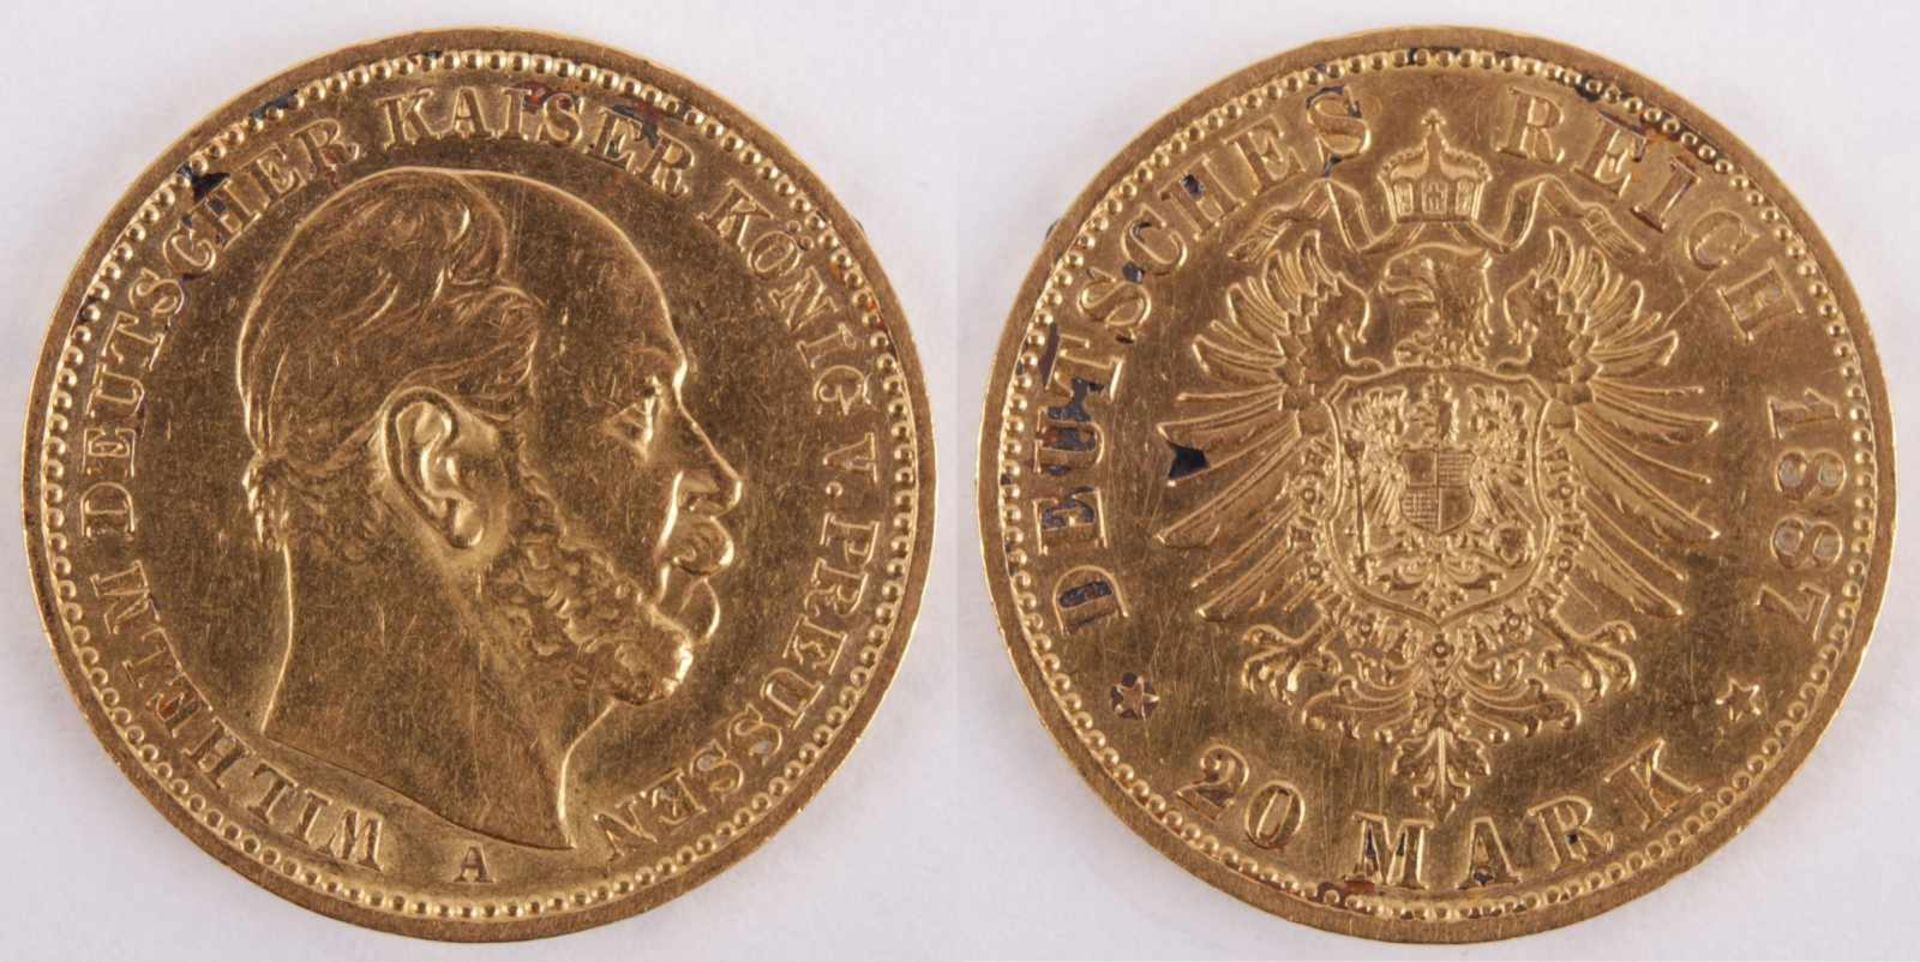 Gold coin: 20 Mark 1887 Prussia, 20 Mark, William I, German Emperor, year 1887, gold coin, 900/